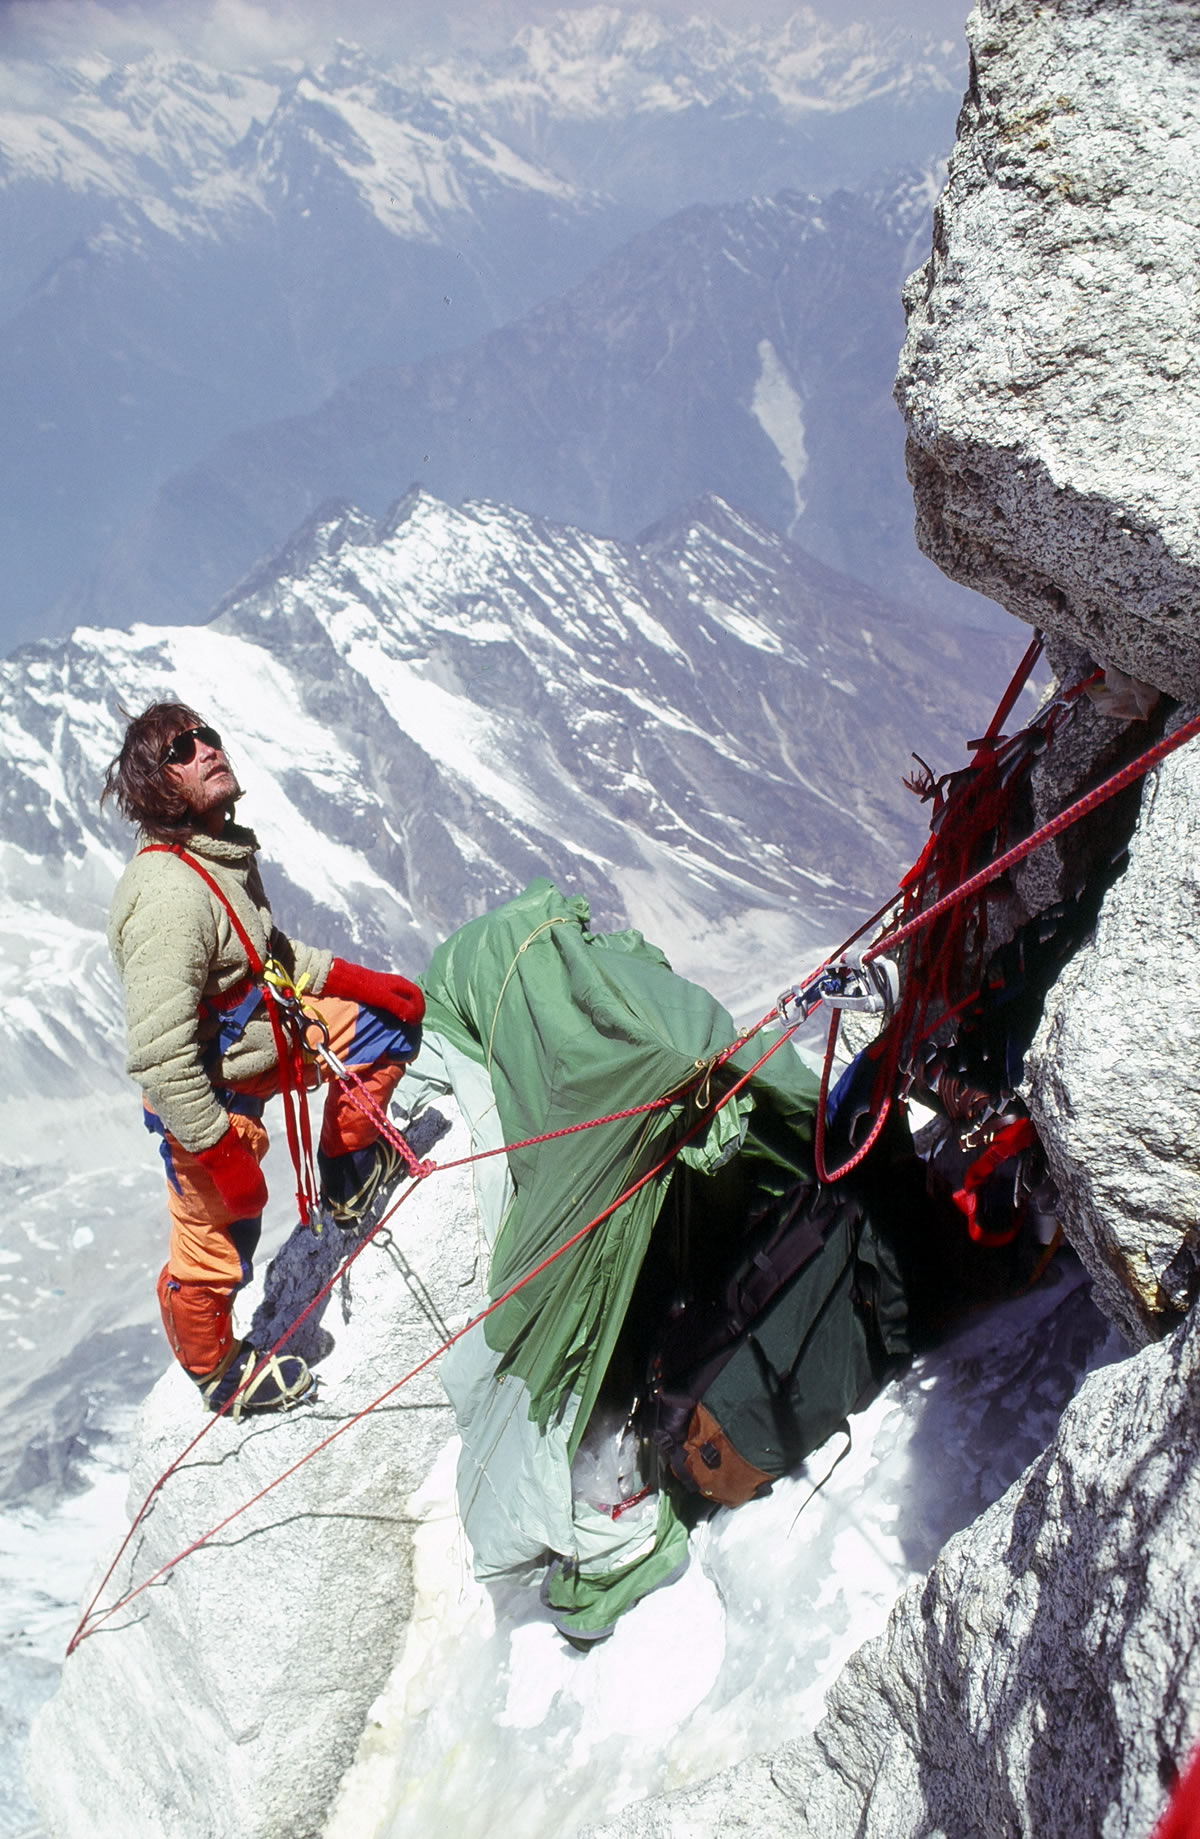 Kim Schmitz at the high camp on the first ascent of Gaurishankar (7181m), Nepal, 1979. [Photo] John Roskelley